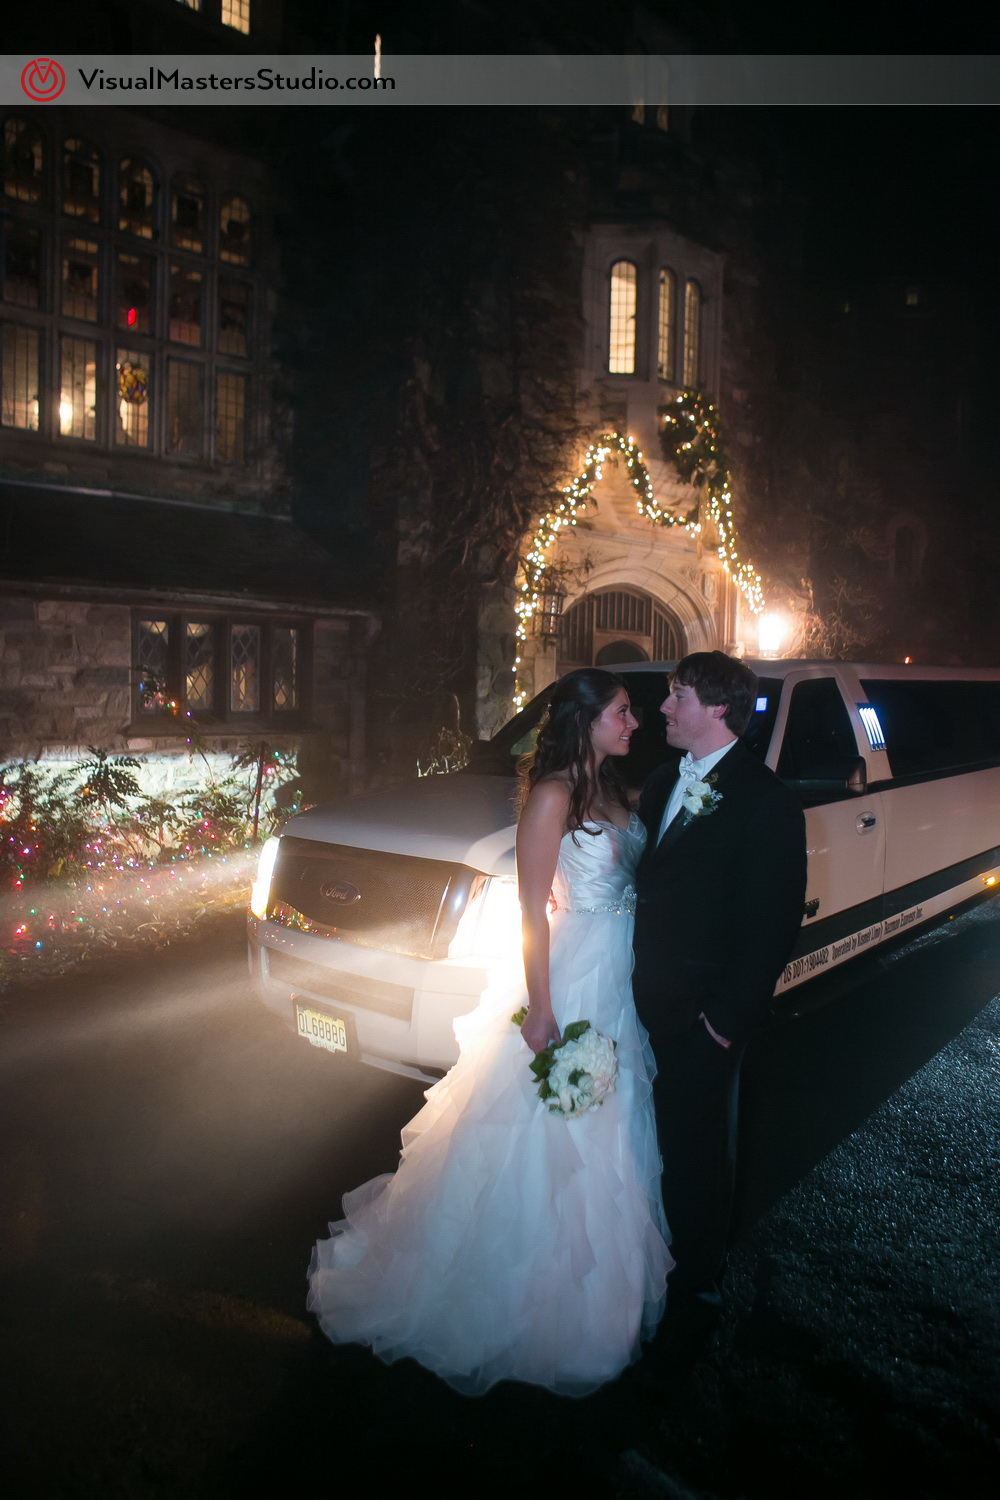 Bride and Groom posing by the limo at The Castle at Skylands Manor by Visual Masters